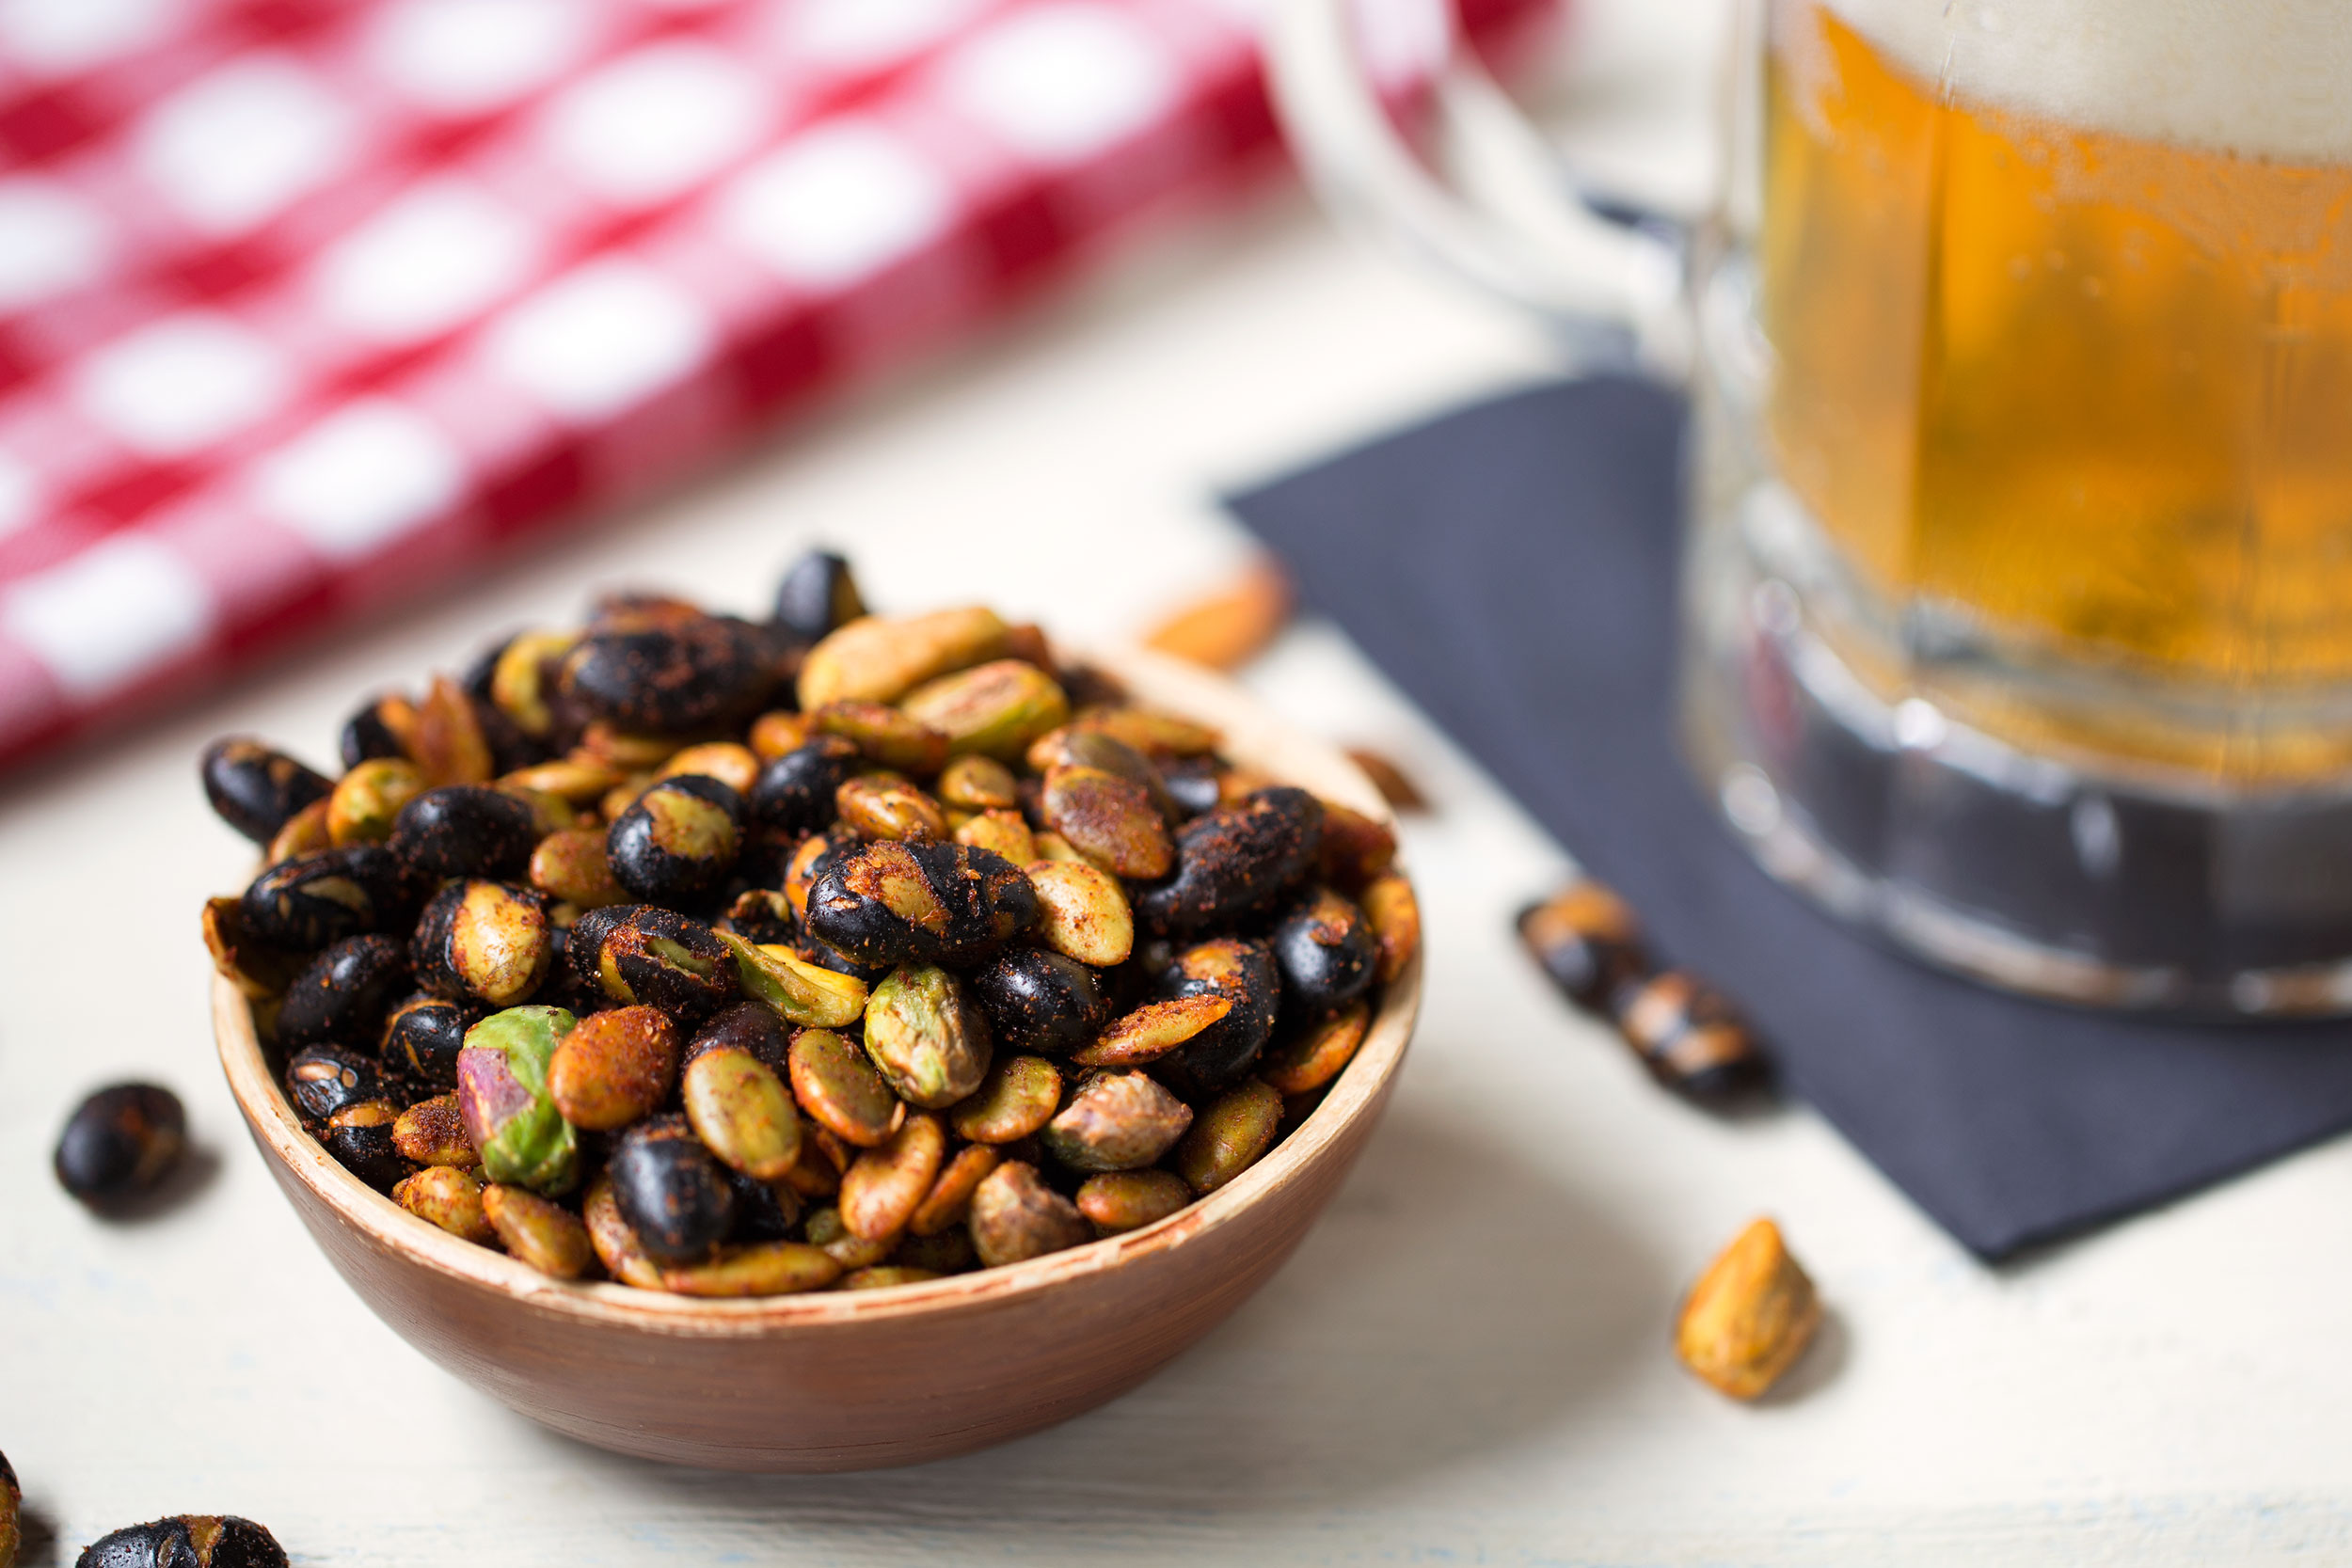 Roasted Black Soybean Party Mix